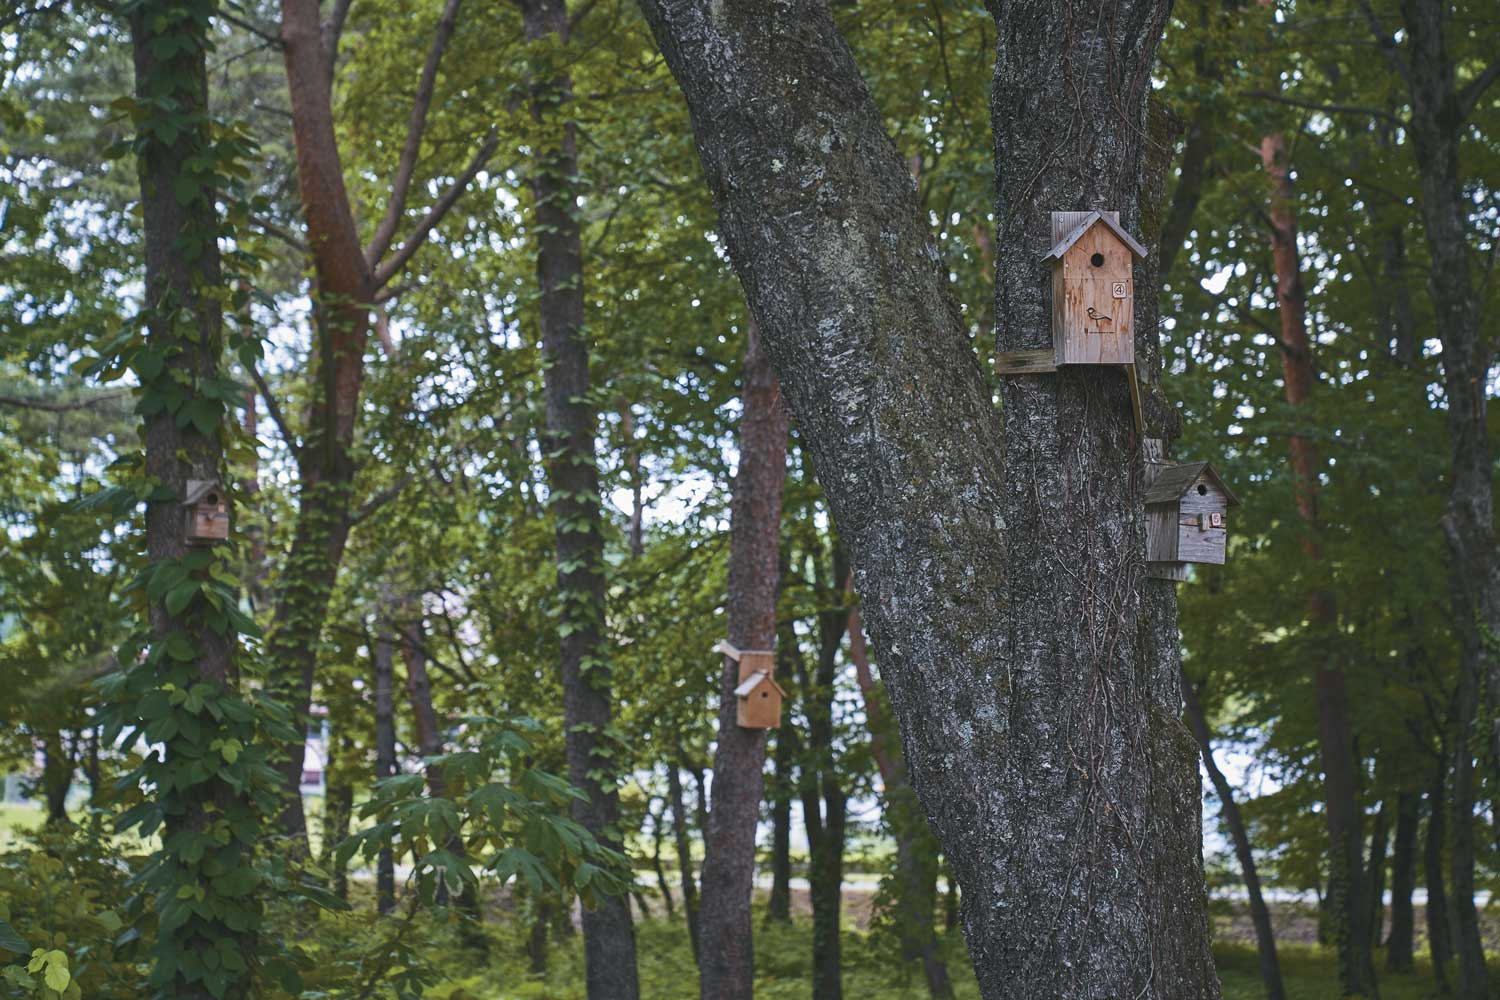 Birds and squirrel houses are installed on-site, and regular maintenance is performed to observe its habitat.